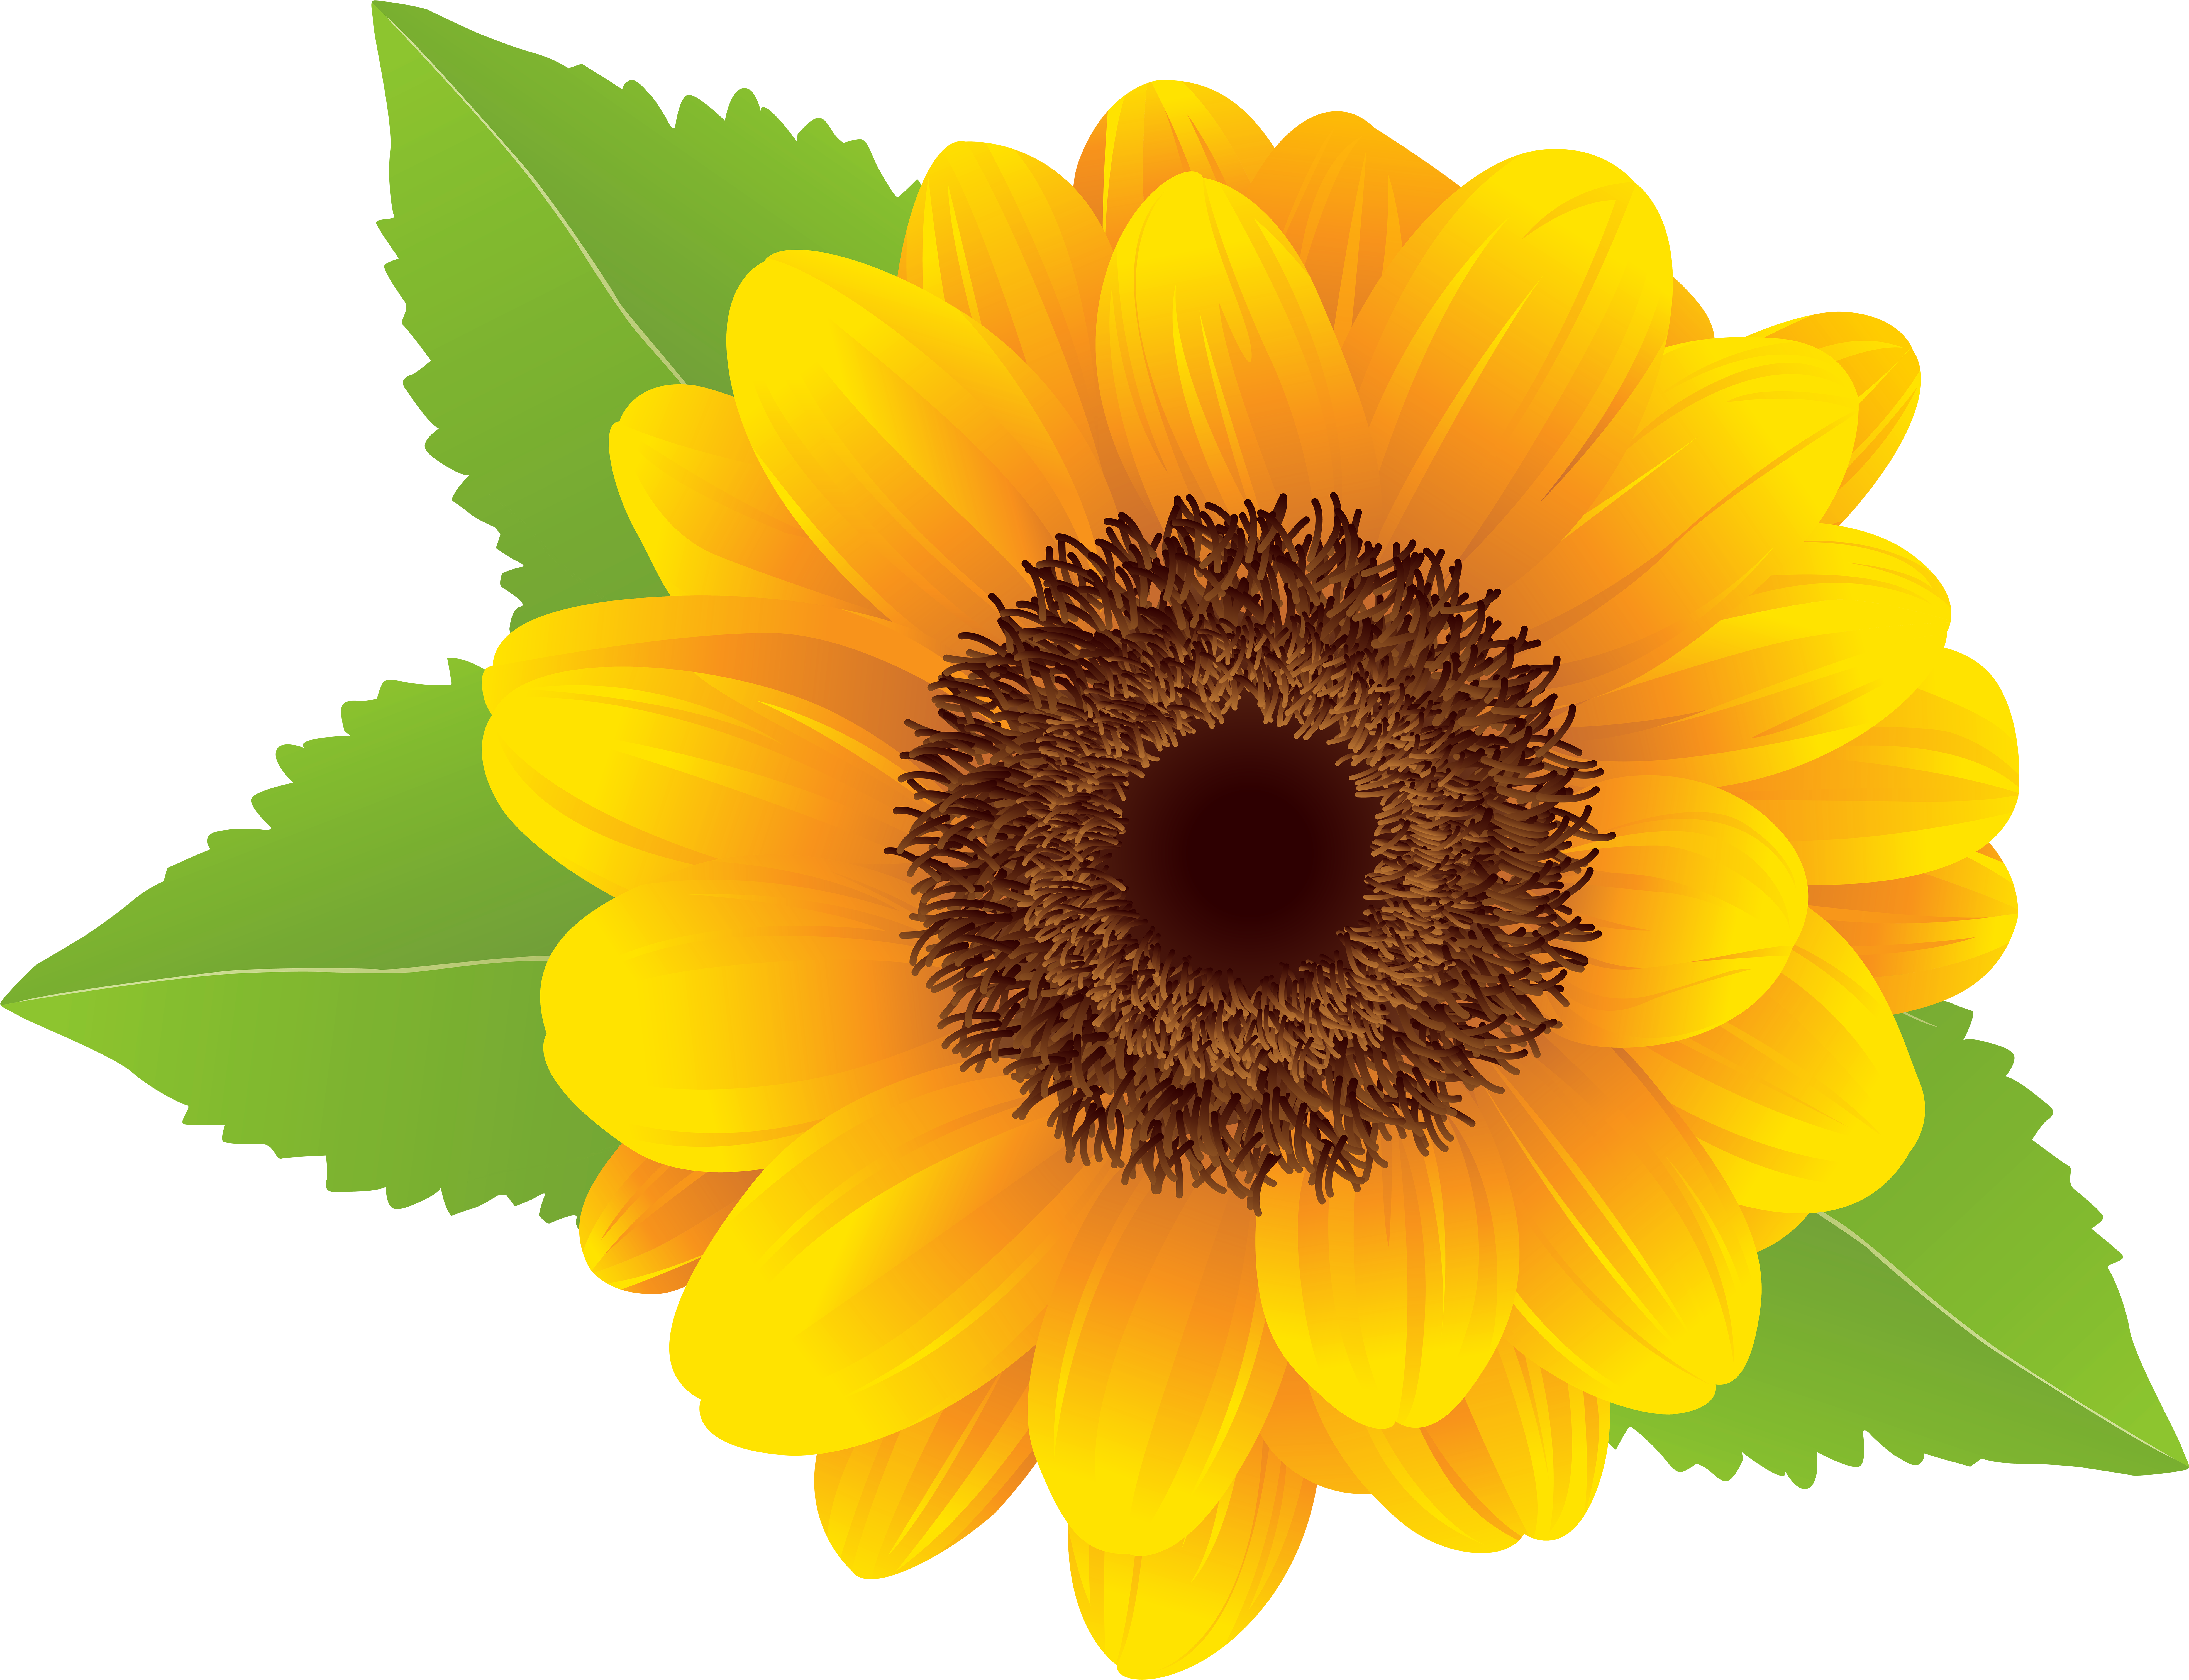 Sunflower cake clipart banner library download HD Sunflower Png Clip Art Image , Free Unlimited Download ... banner library download